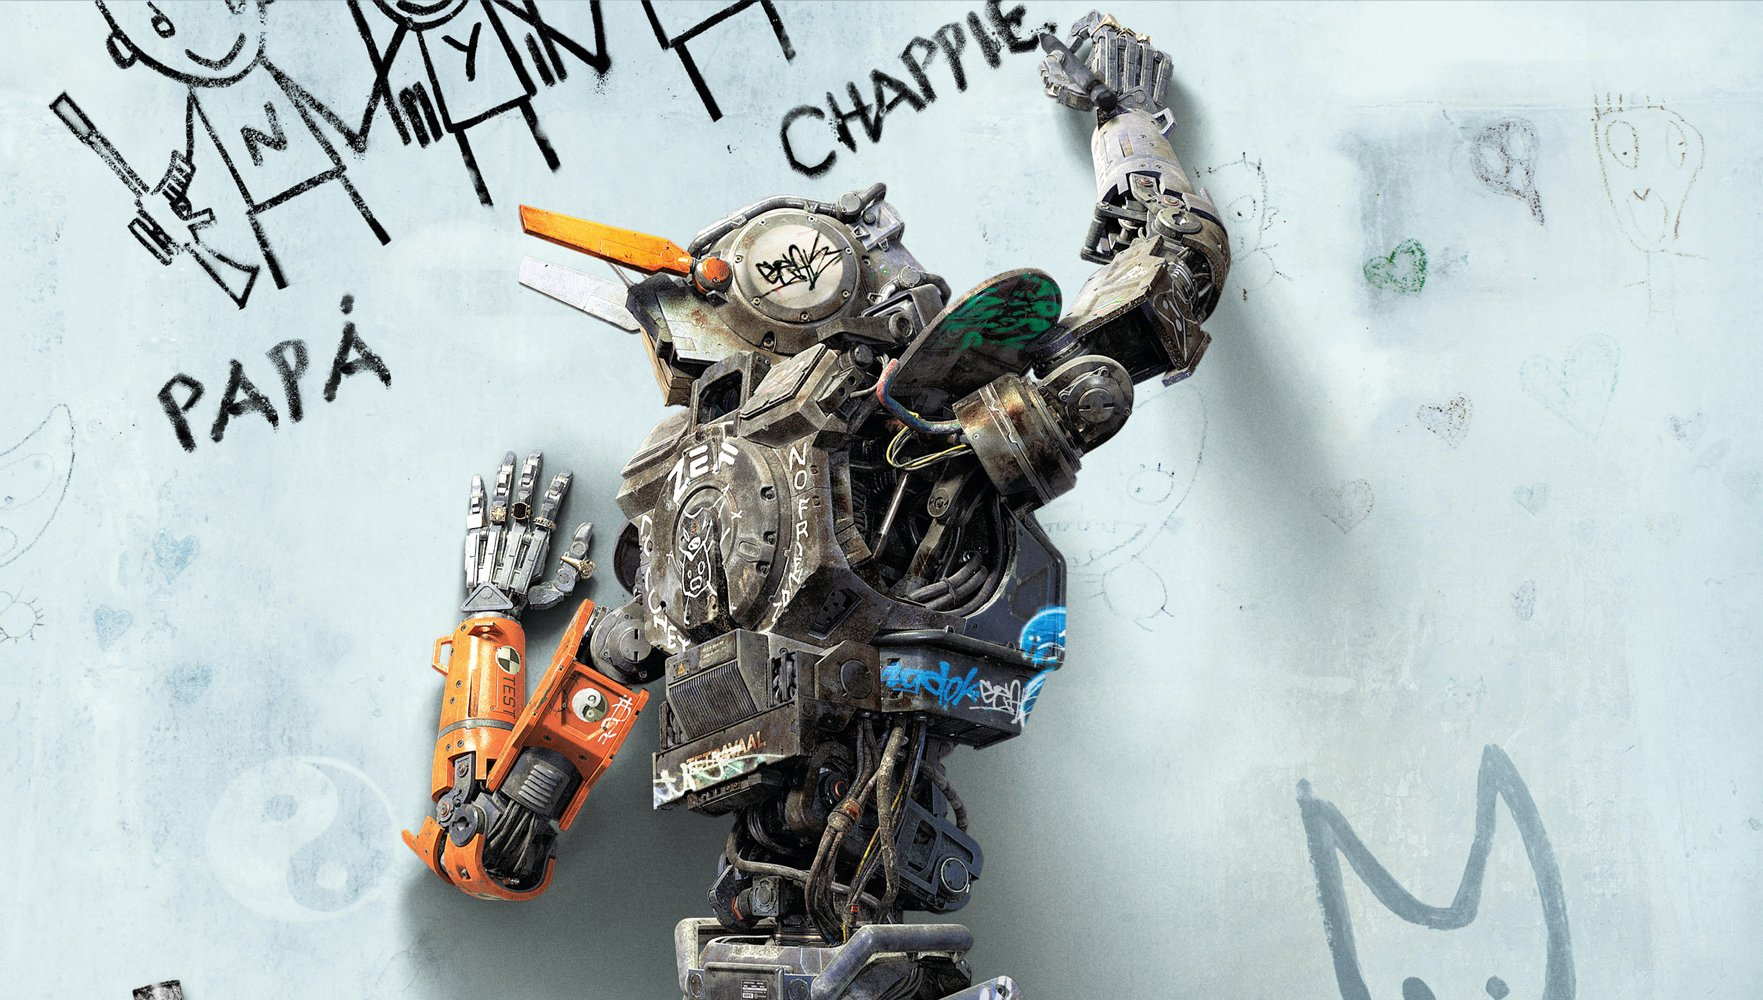 Chappie - Critique du film de Neill Blomkamp